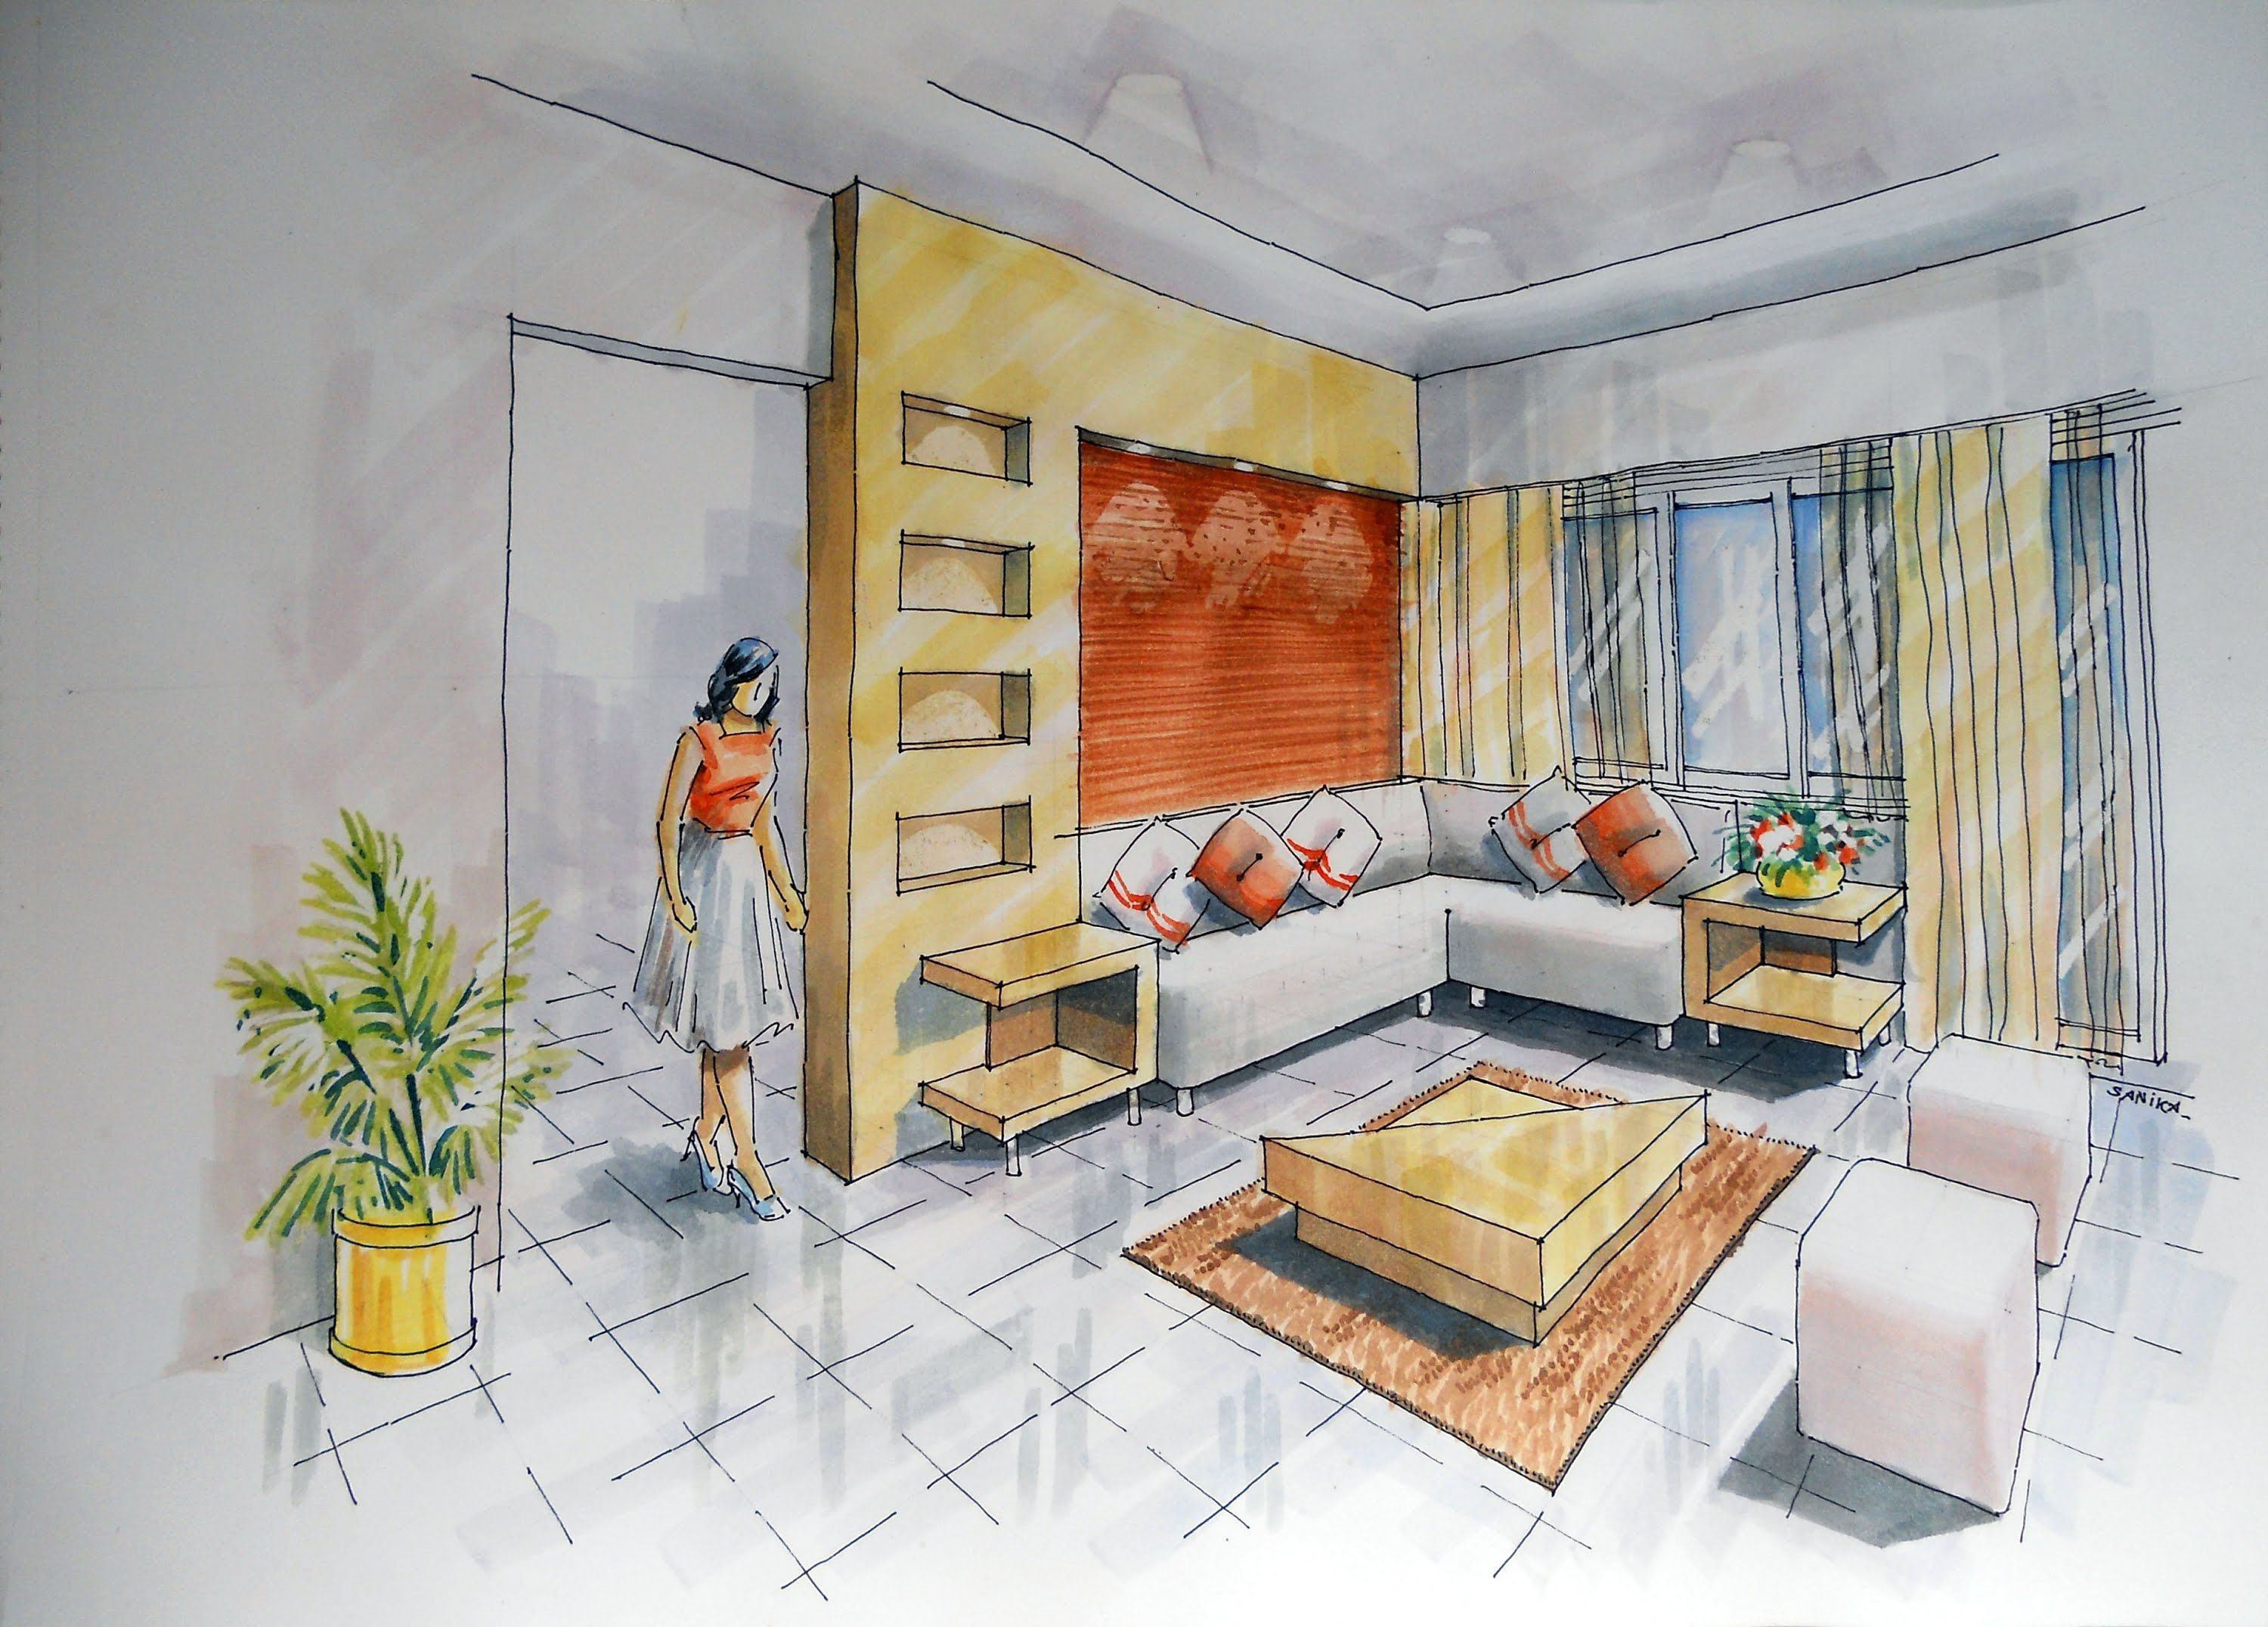 2 Point Interior Design Perspective Drawing Manual Rendering How To Tuto.